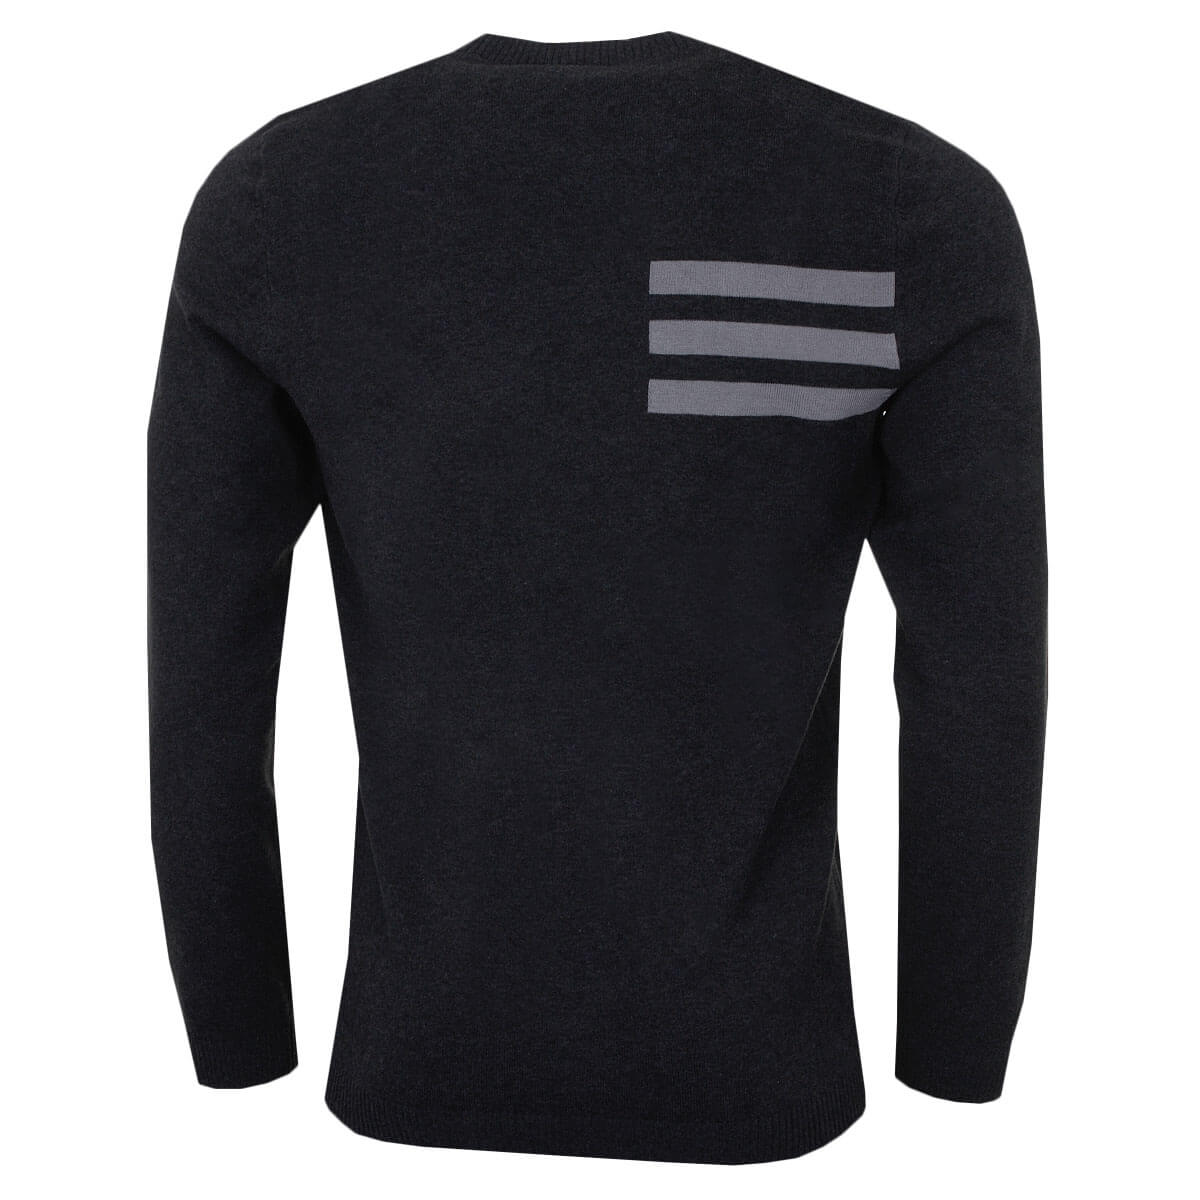 adidas-Golf-Mens-Blend-Cotton-Crew-Neck-Jumper-Pullover-Sweater-44-OFF-RRP thumbnail 3